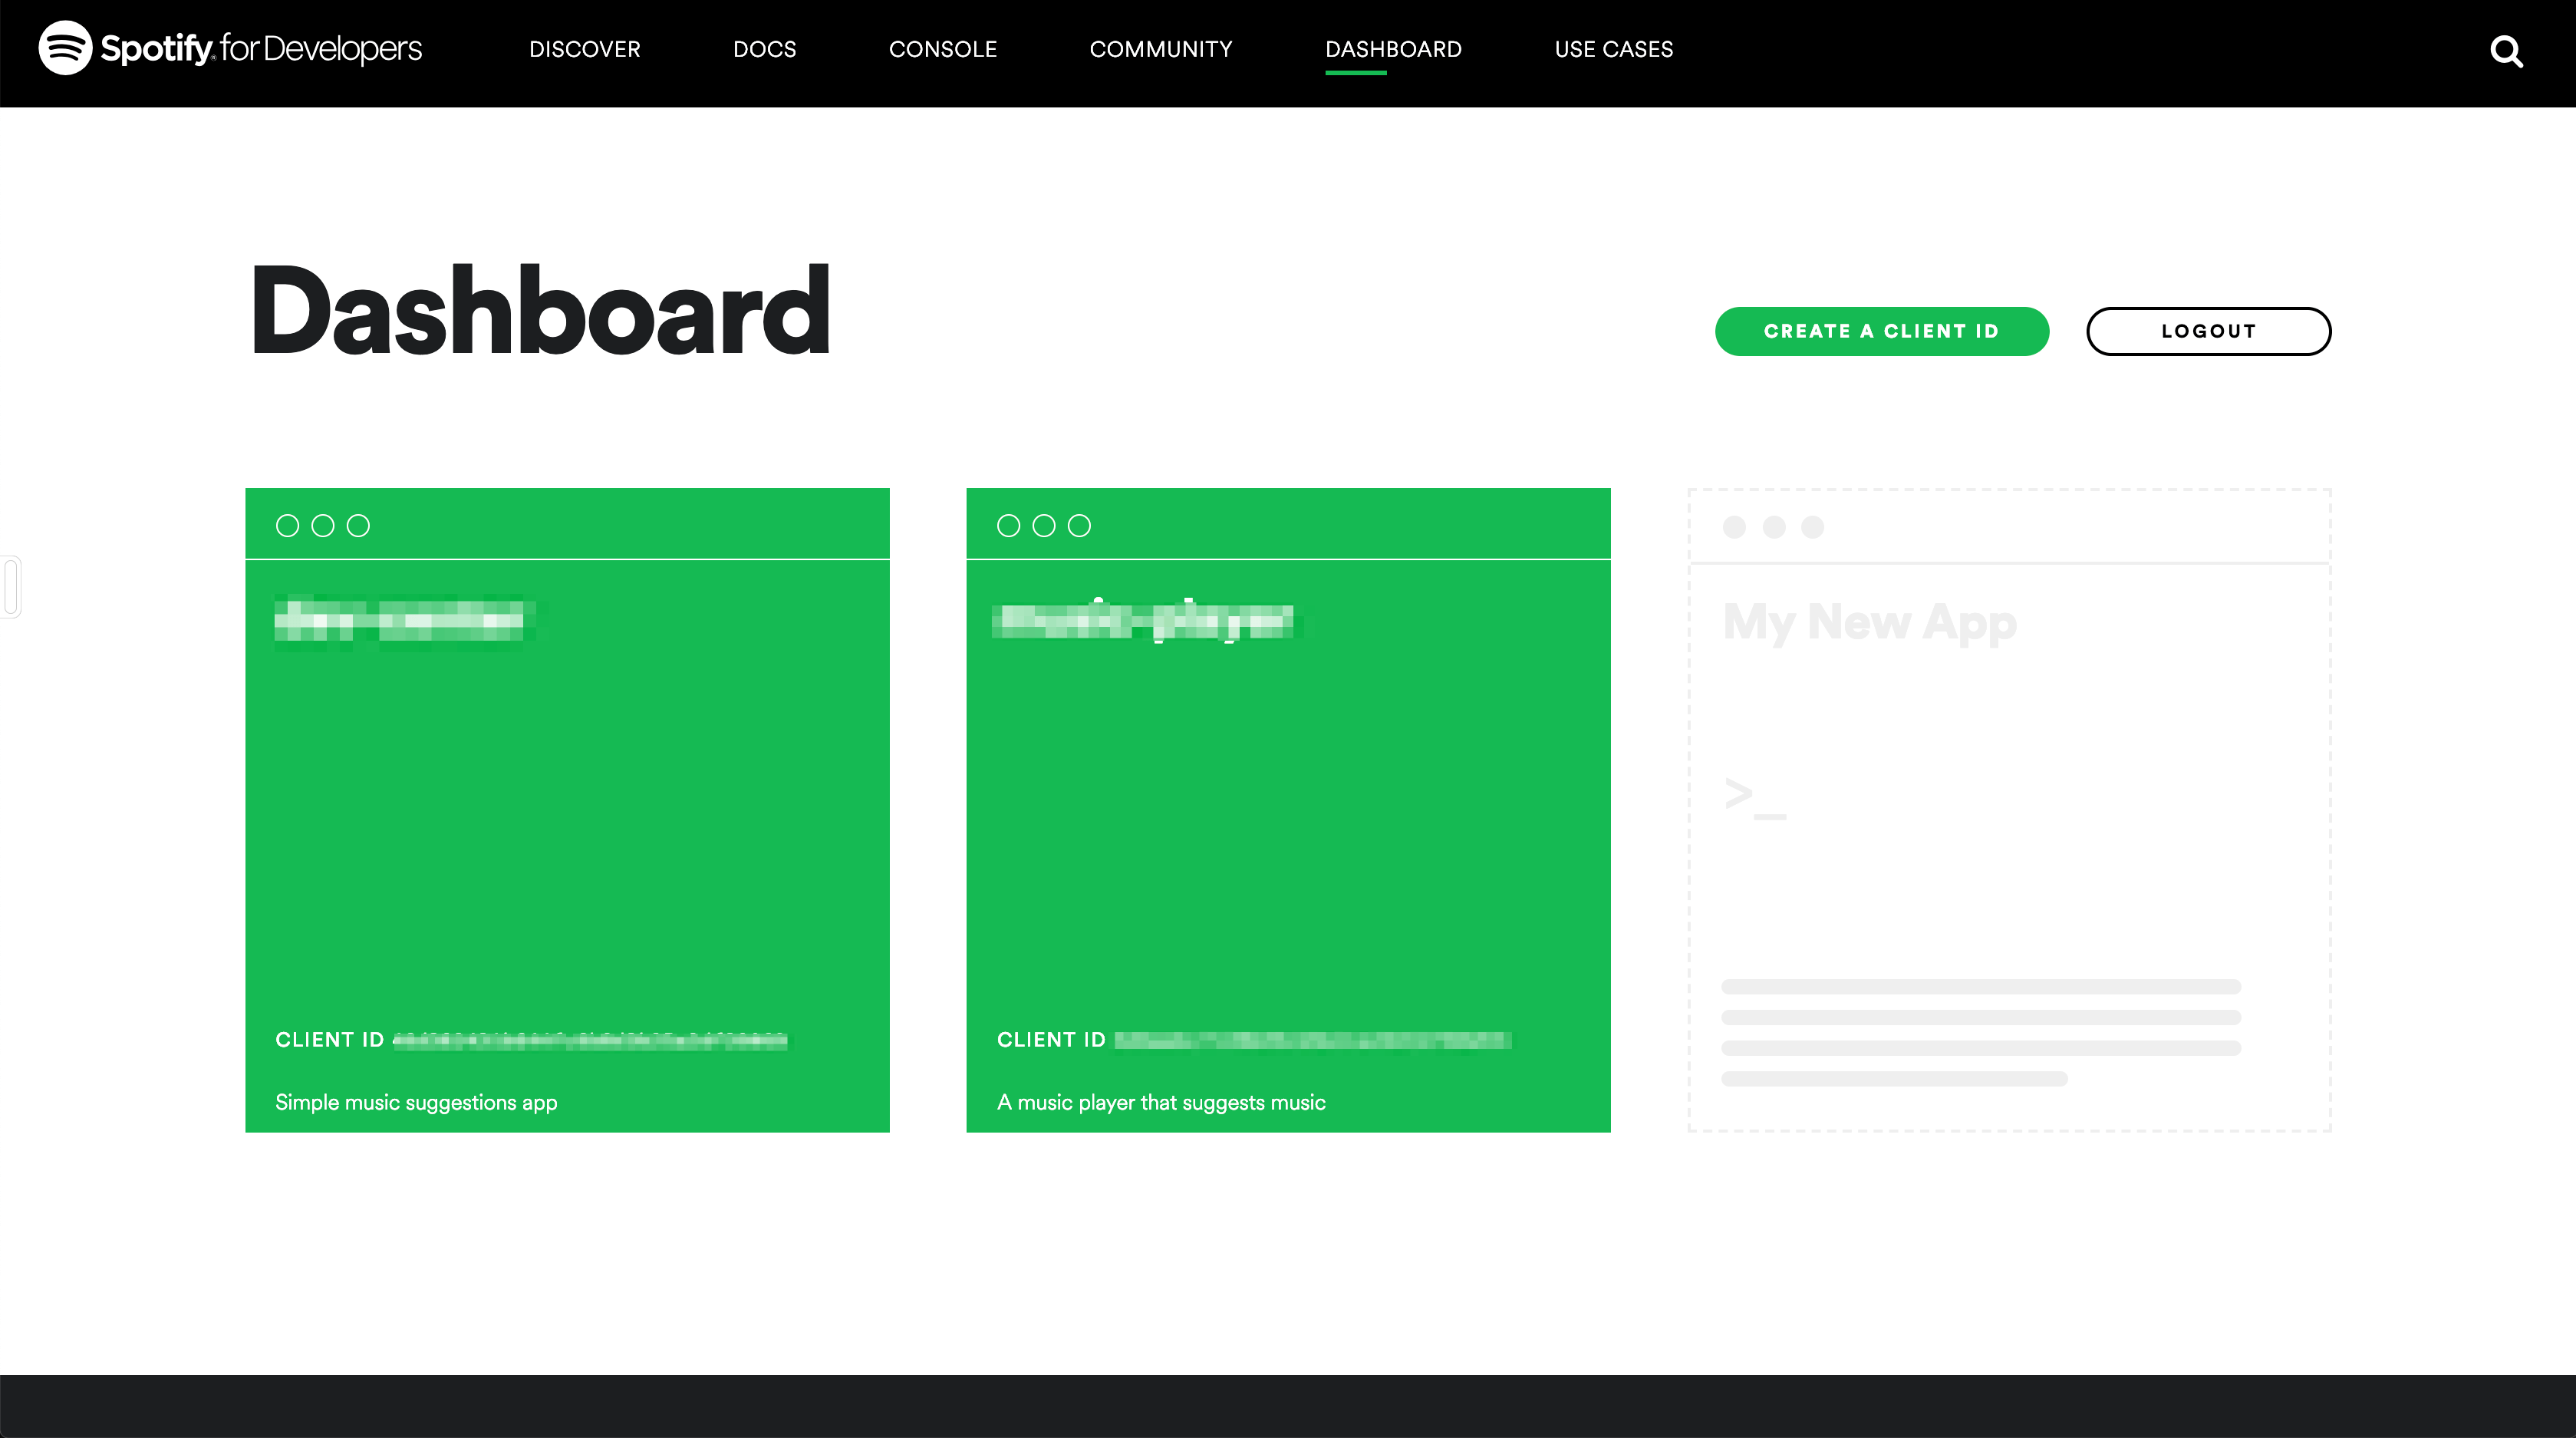 The developer dashboard. Existing applications should be listed.